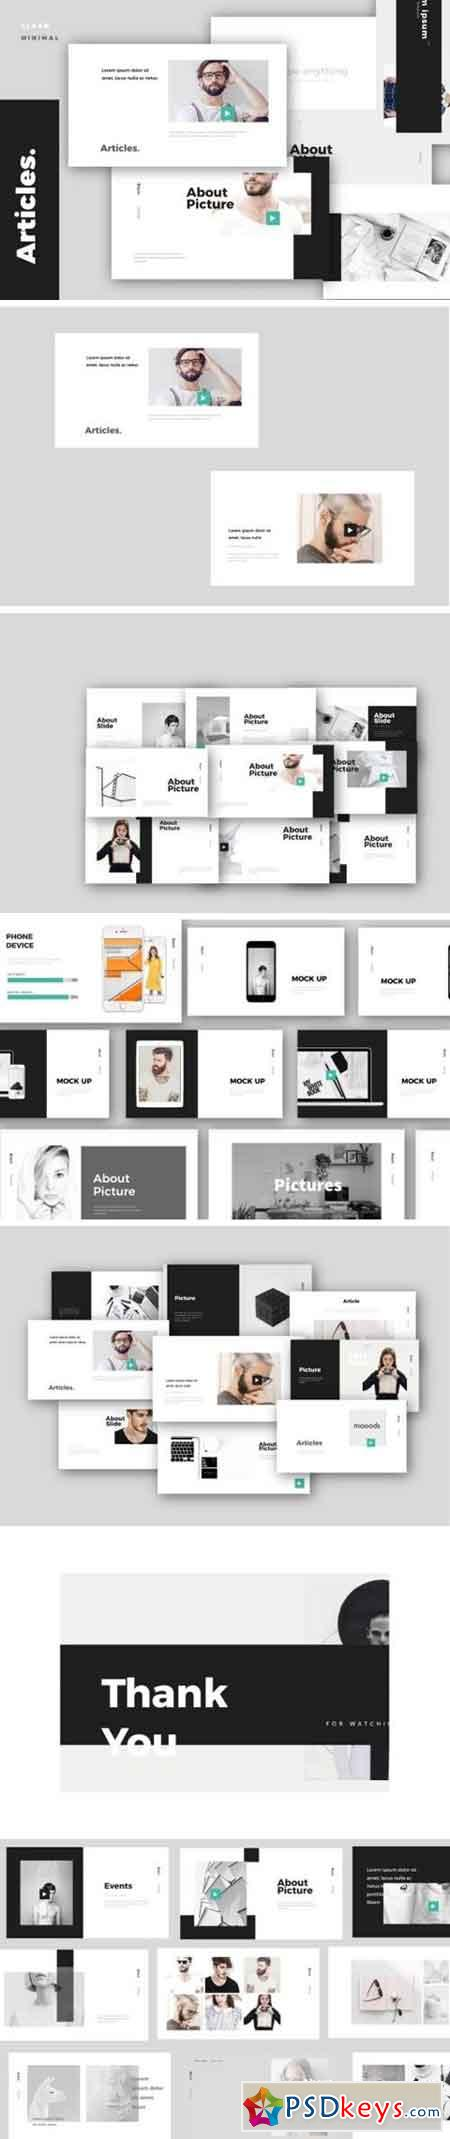 Articles. Modern Minimal Powerpoint & Keynote Template